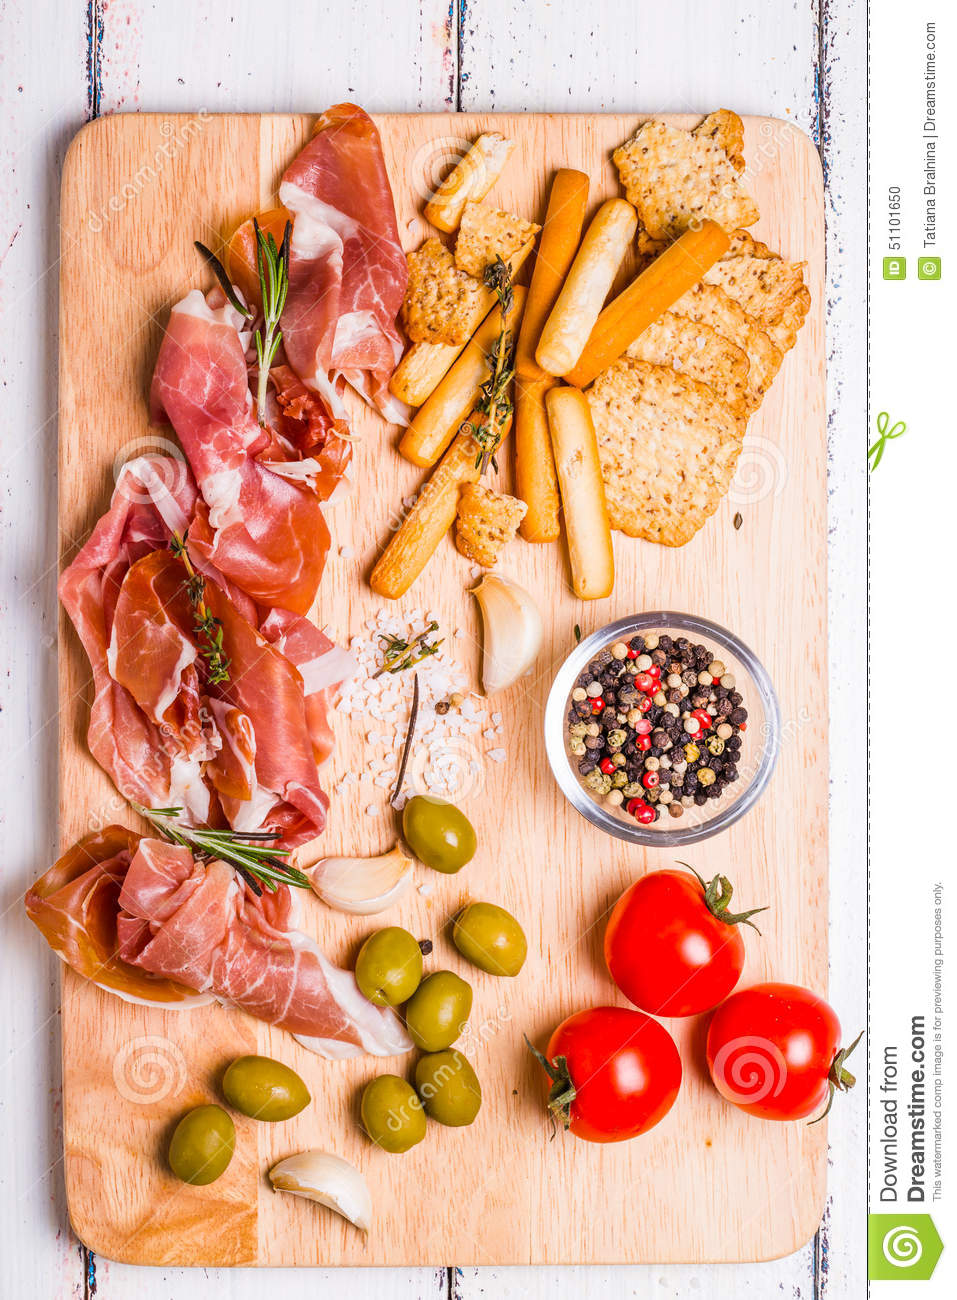 Target Hormel Gatherings Party Trays Just 5 99 Regularly 11 99 besides Stock Photo Closeup On Cold Cuts In Centerpiece Of Table Various Of Smoked Meat 62969948 furthermore Catering 1 furthermore Italian Lemonade further 5 Most  mon Gluten Foods You Need To Avoid. on pepperoni cold cuts